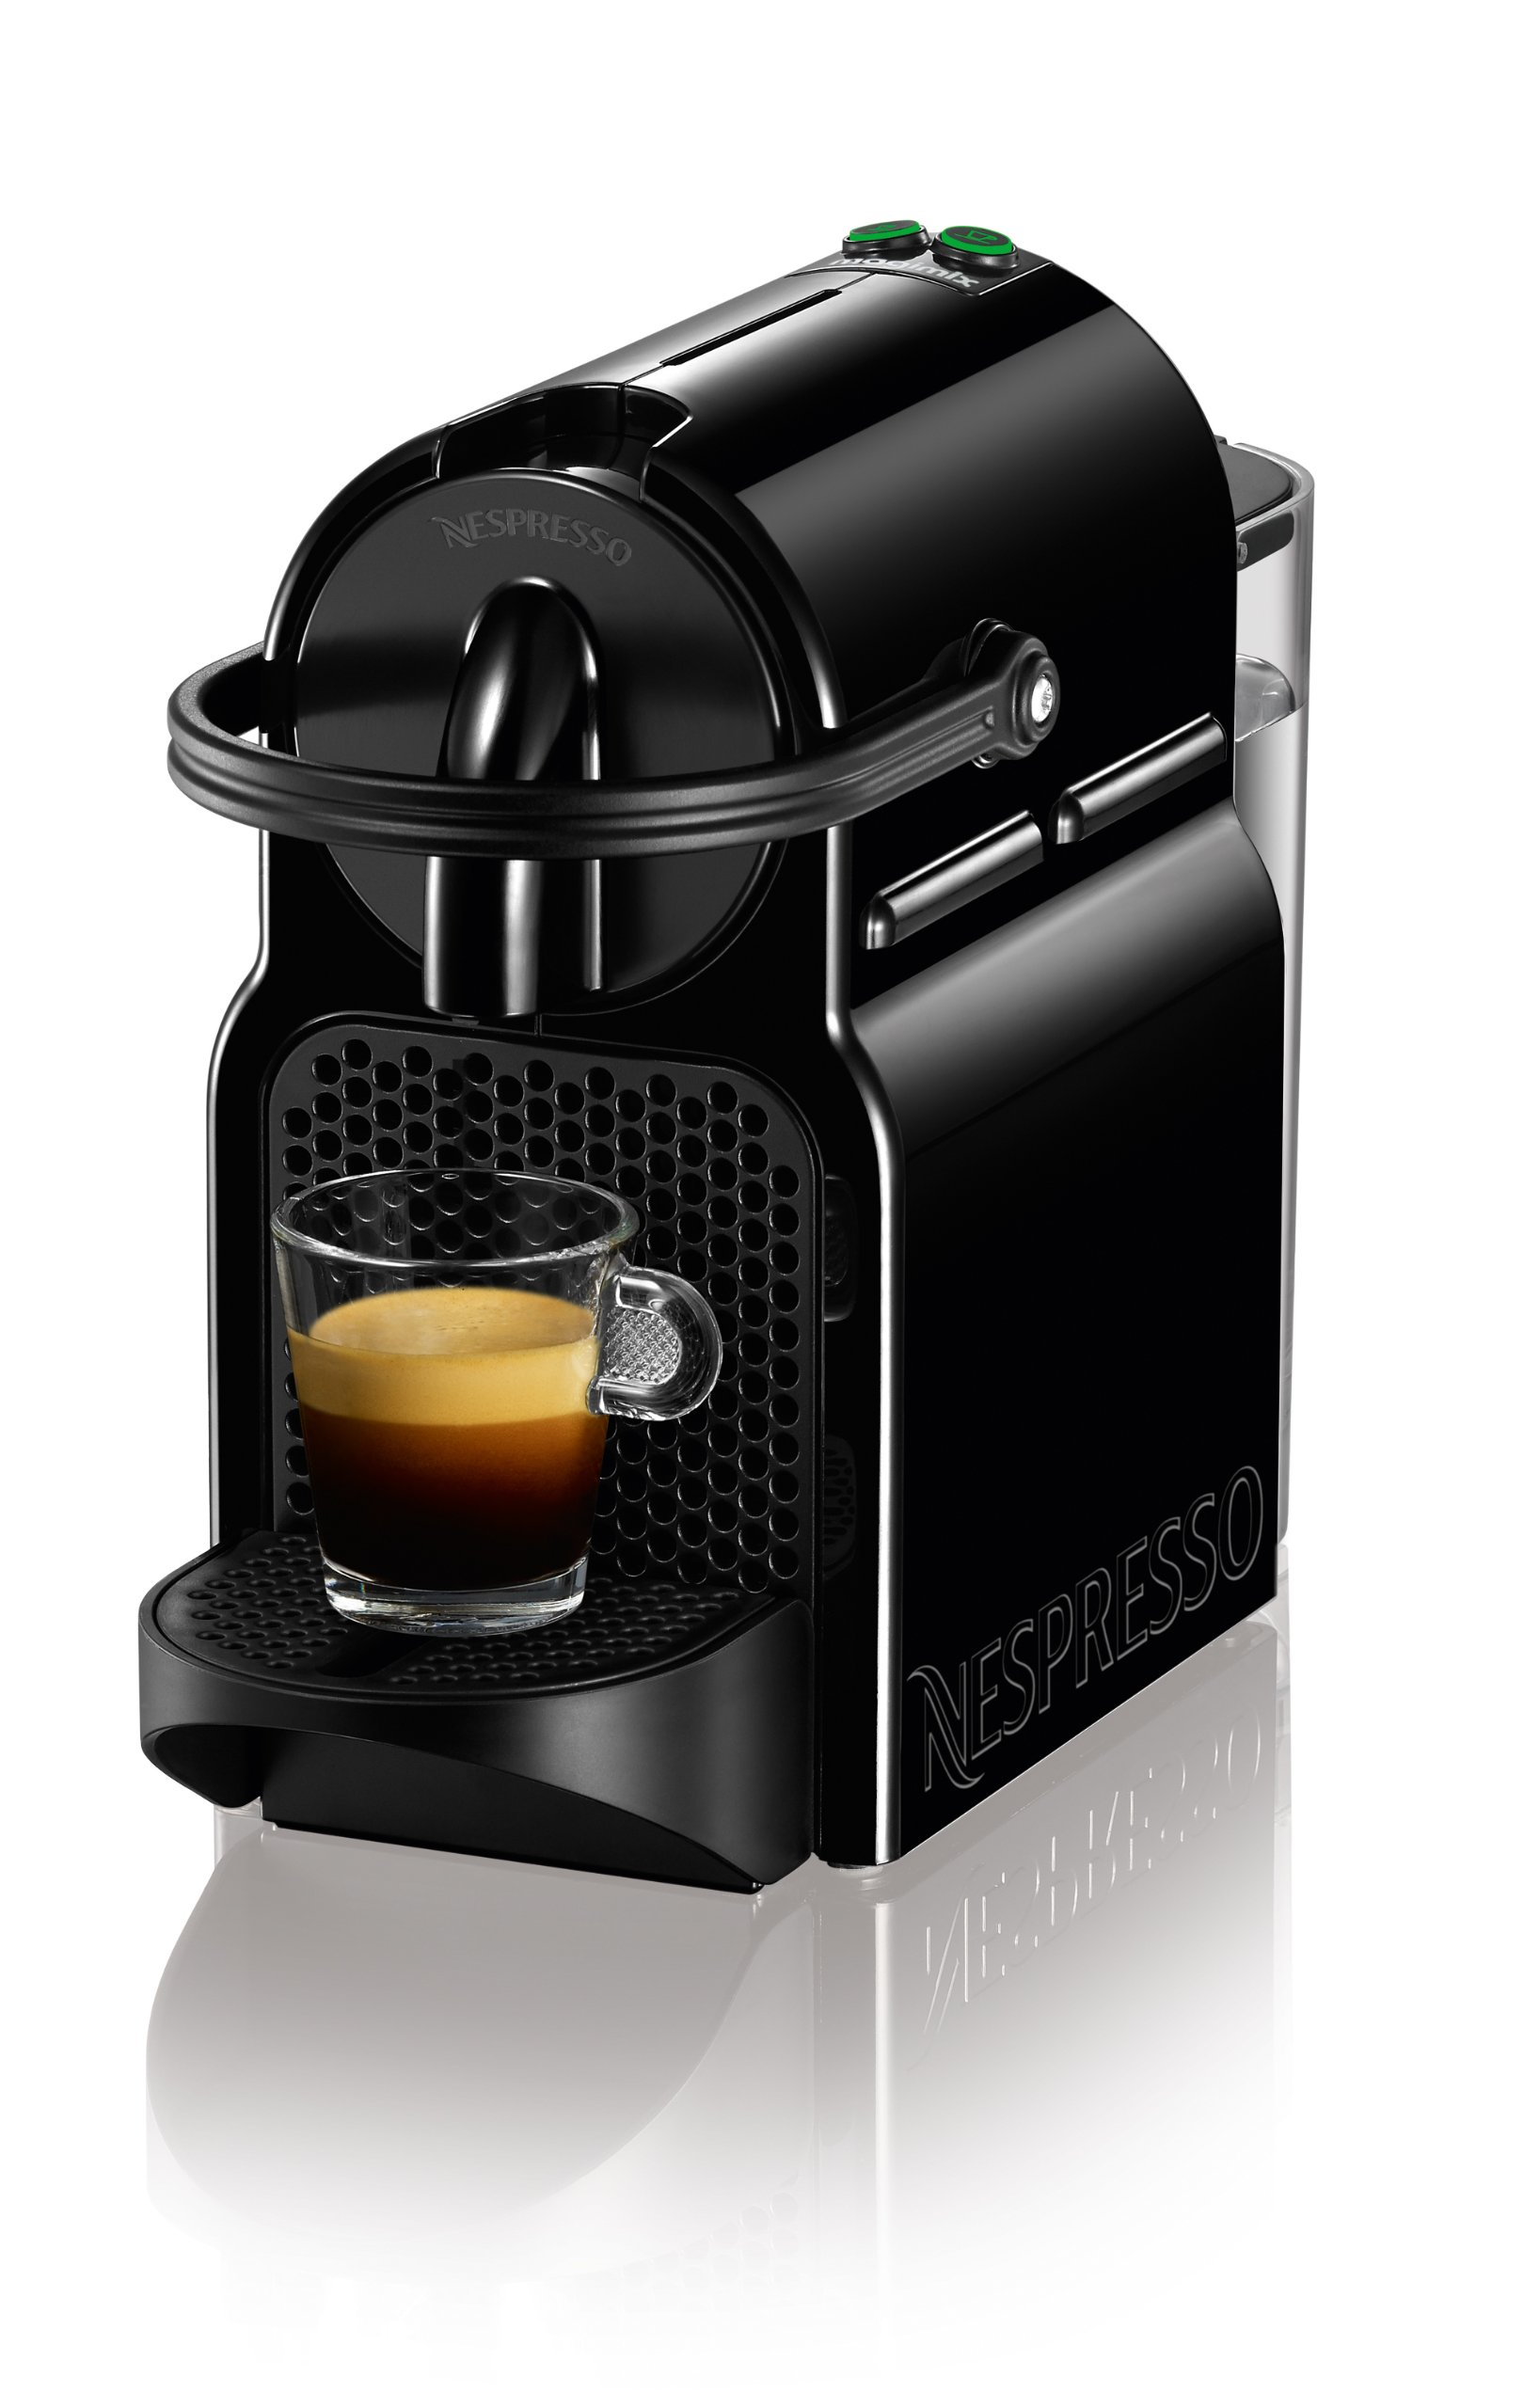 magimix nespresso inissia coffee machine black 5018399113503 ebay. Black Bedroom Furniture Sets. Home Design Ideas